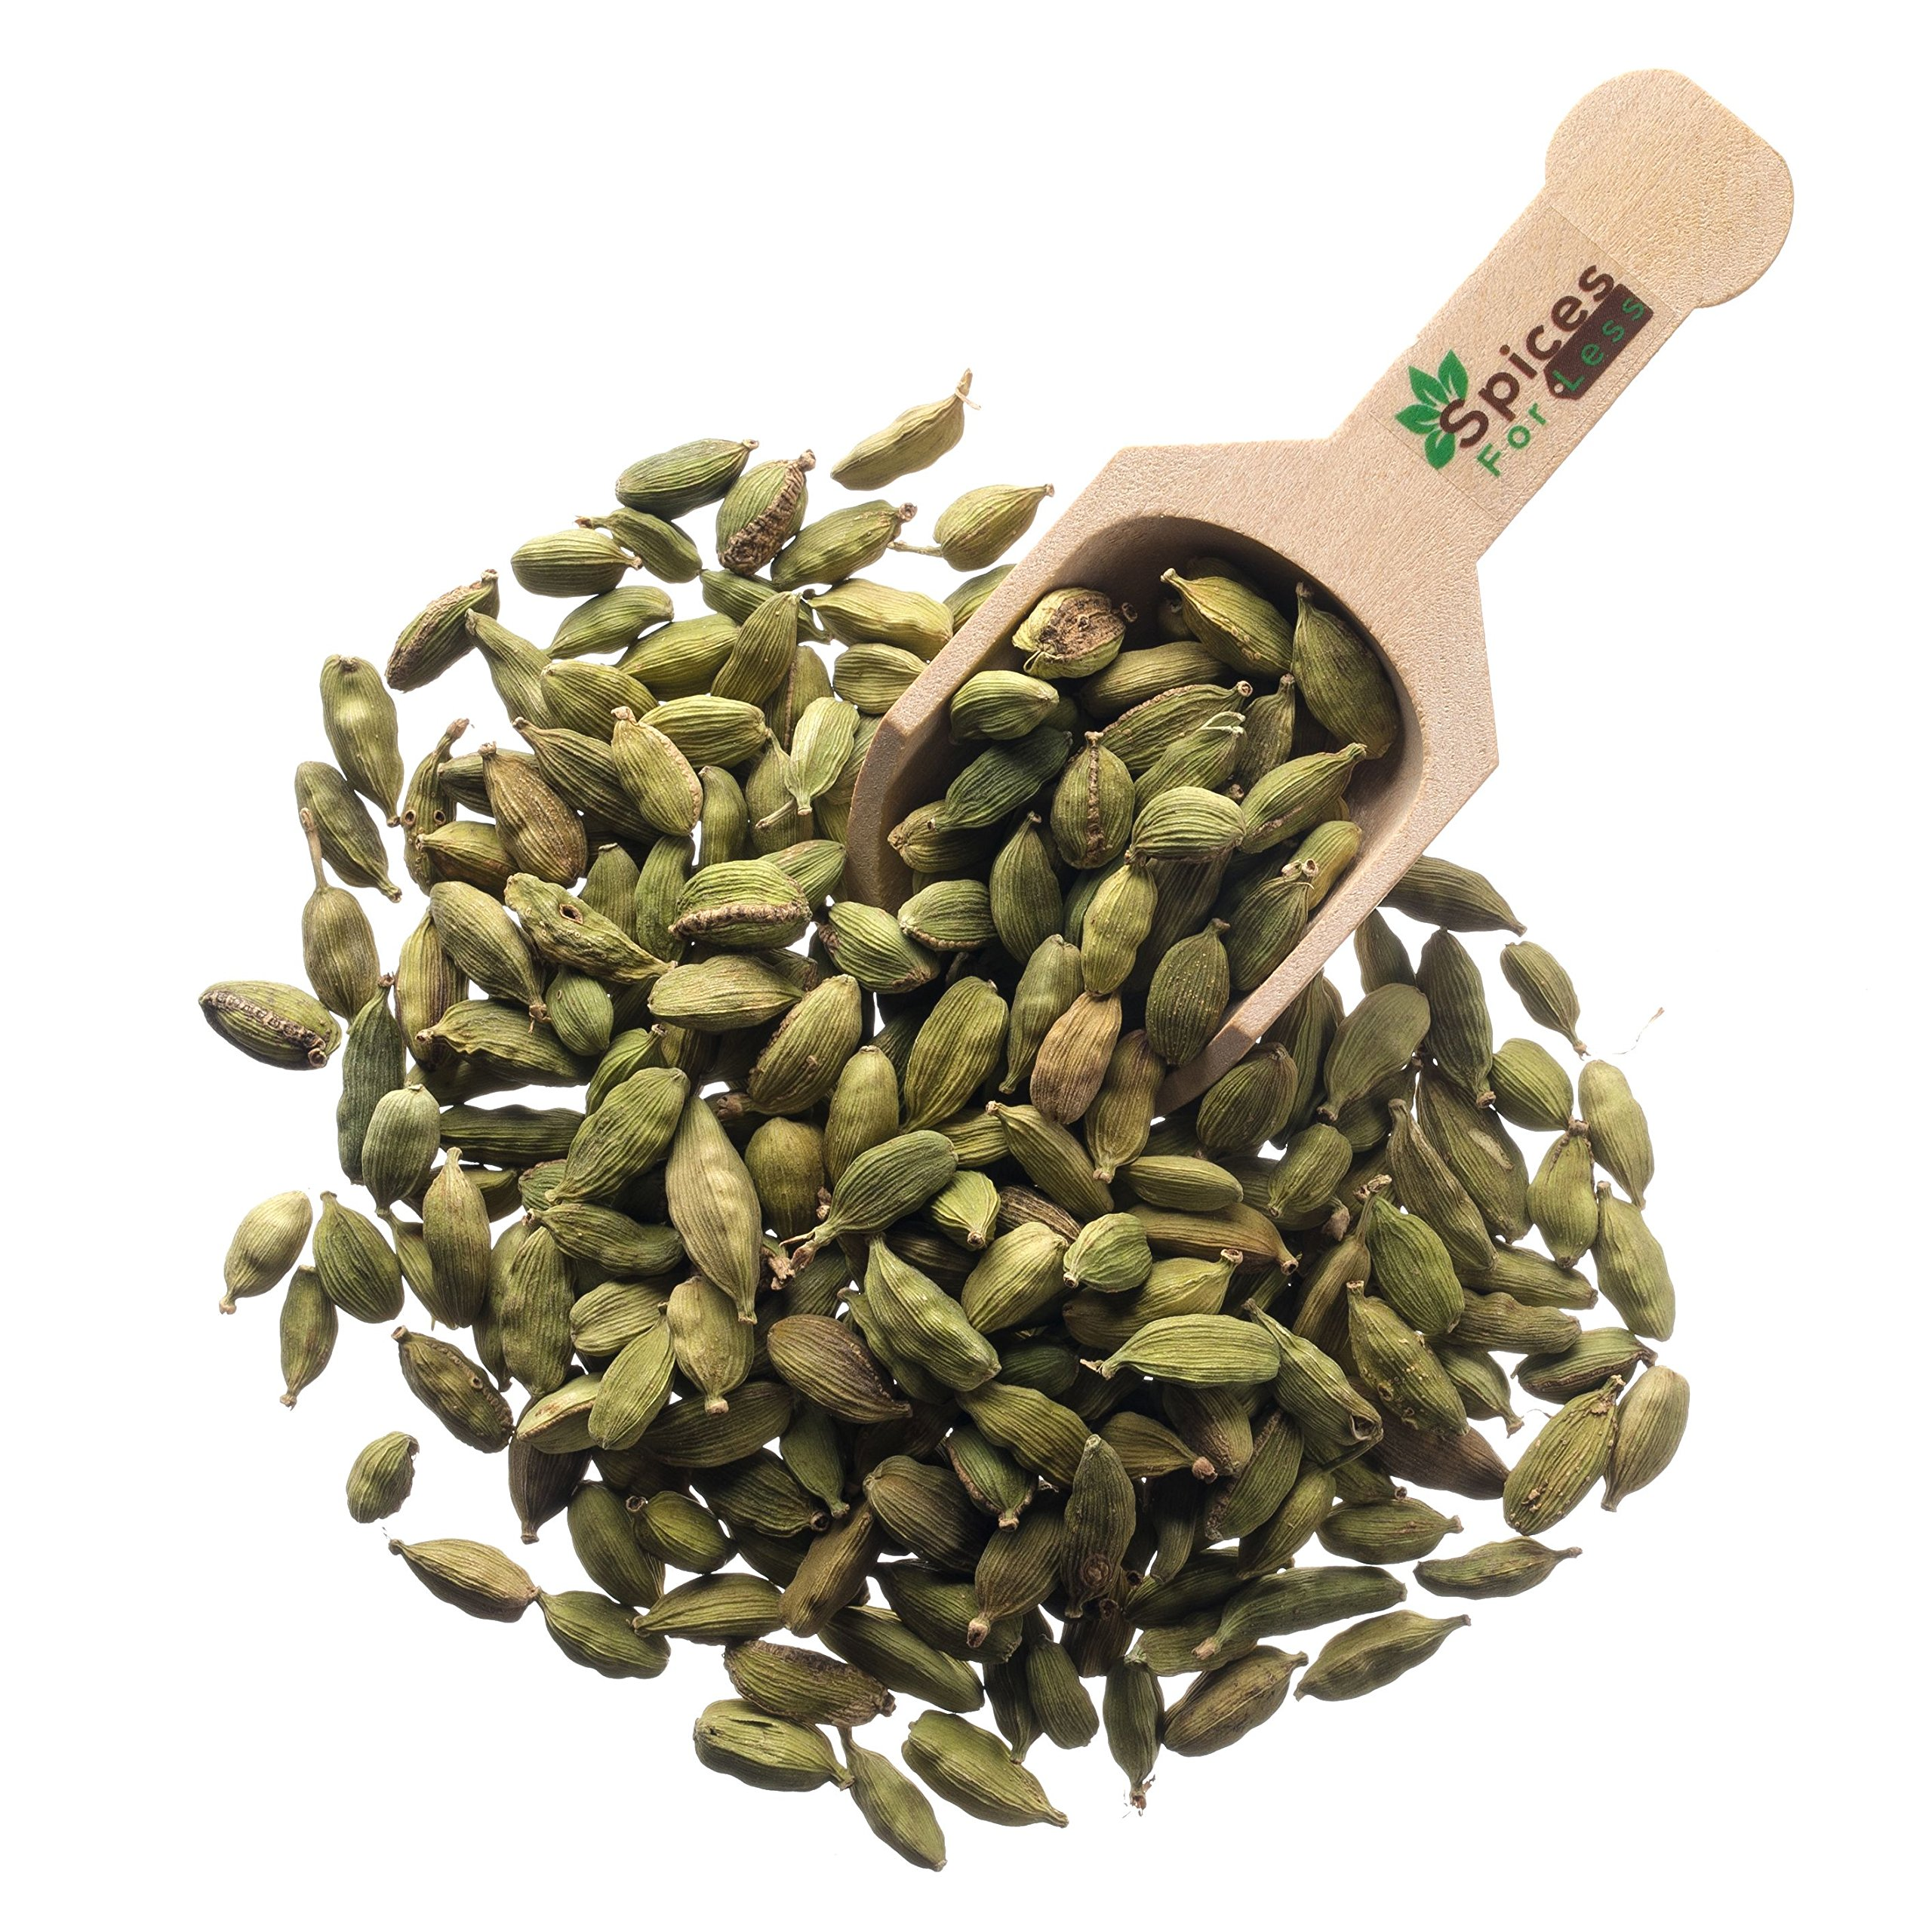 Cardamom, Whole Green Pods (8 oz) by Spices For Less (Image #1)